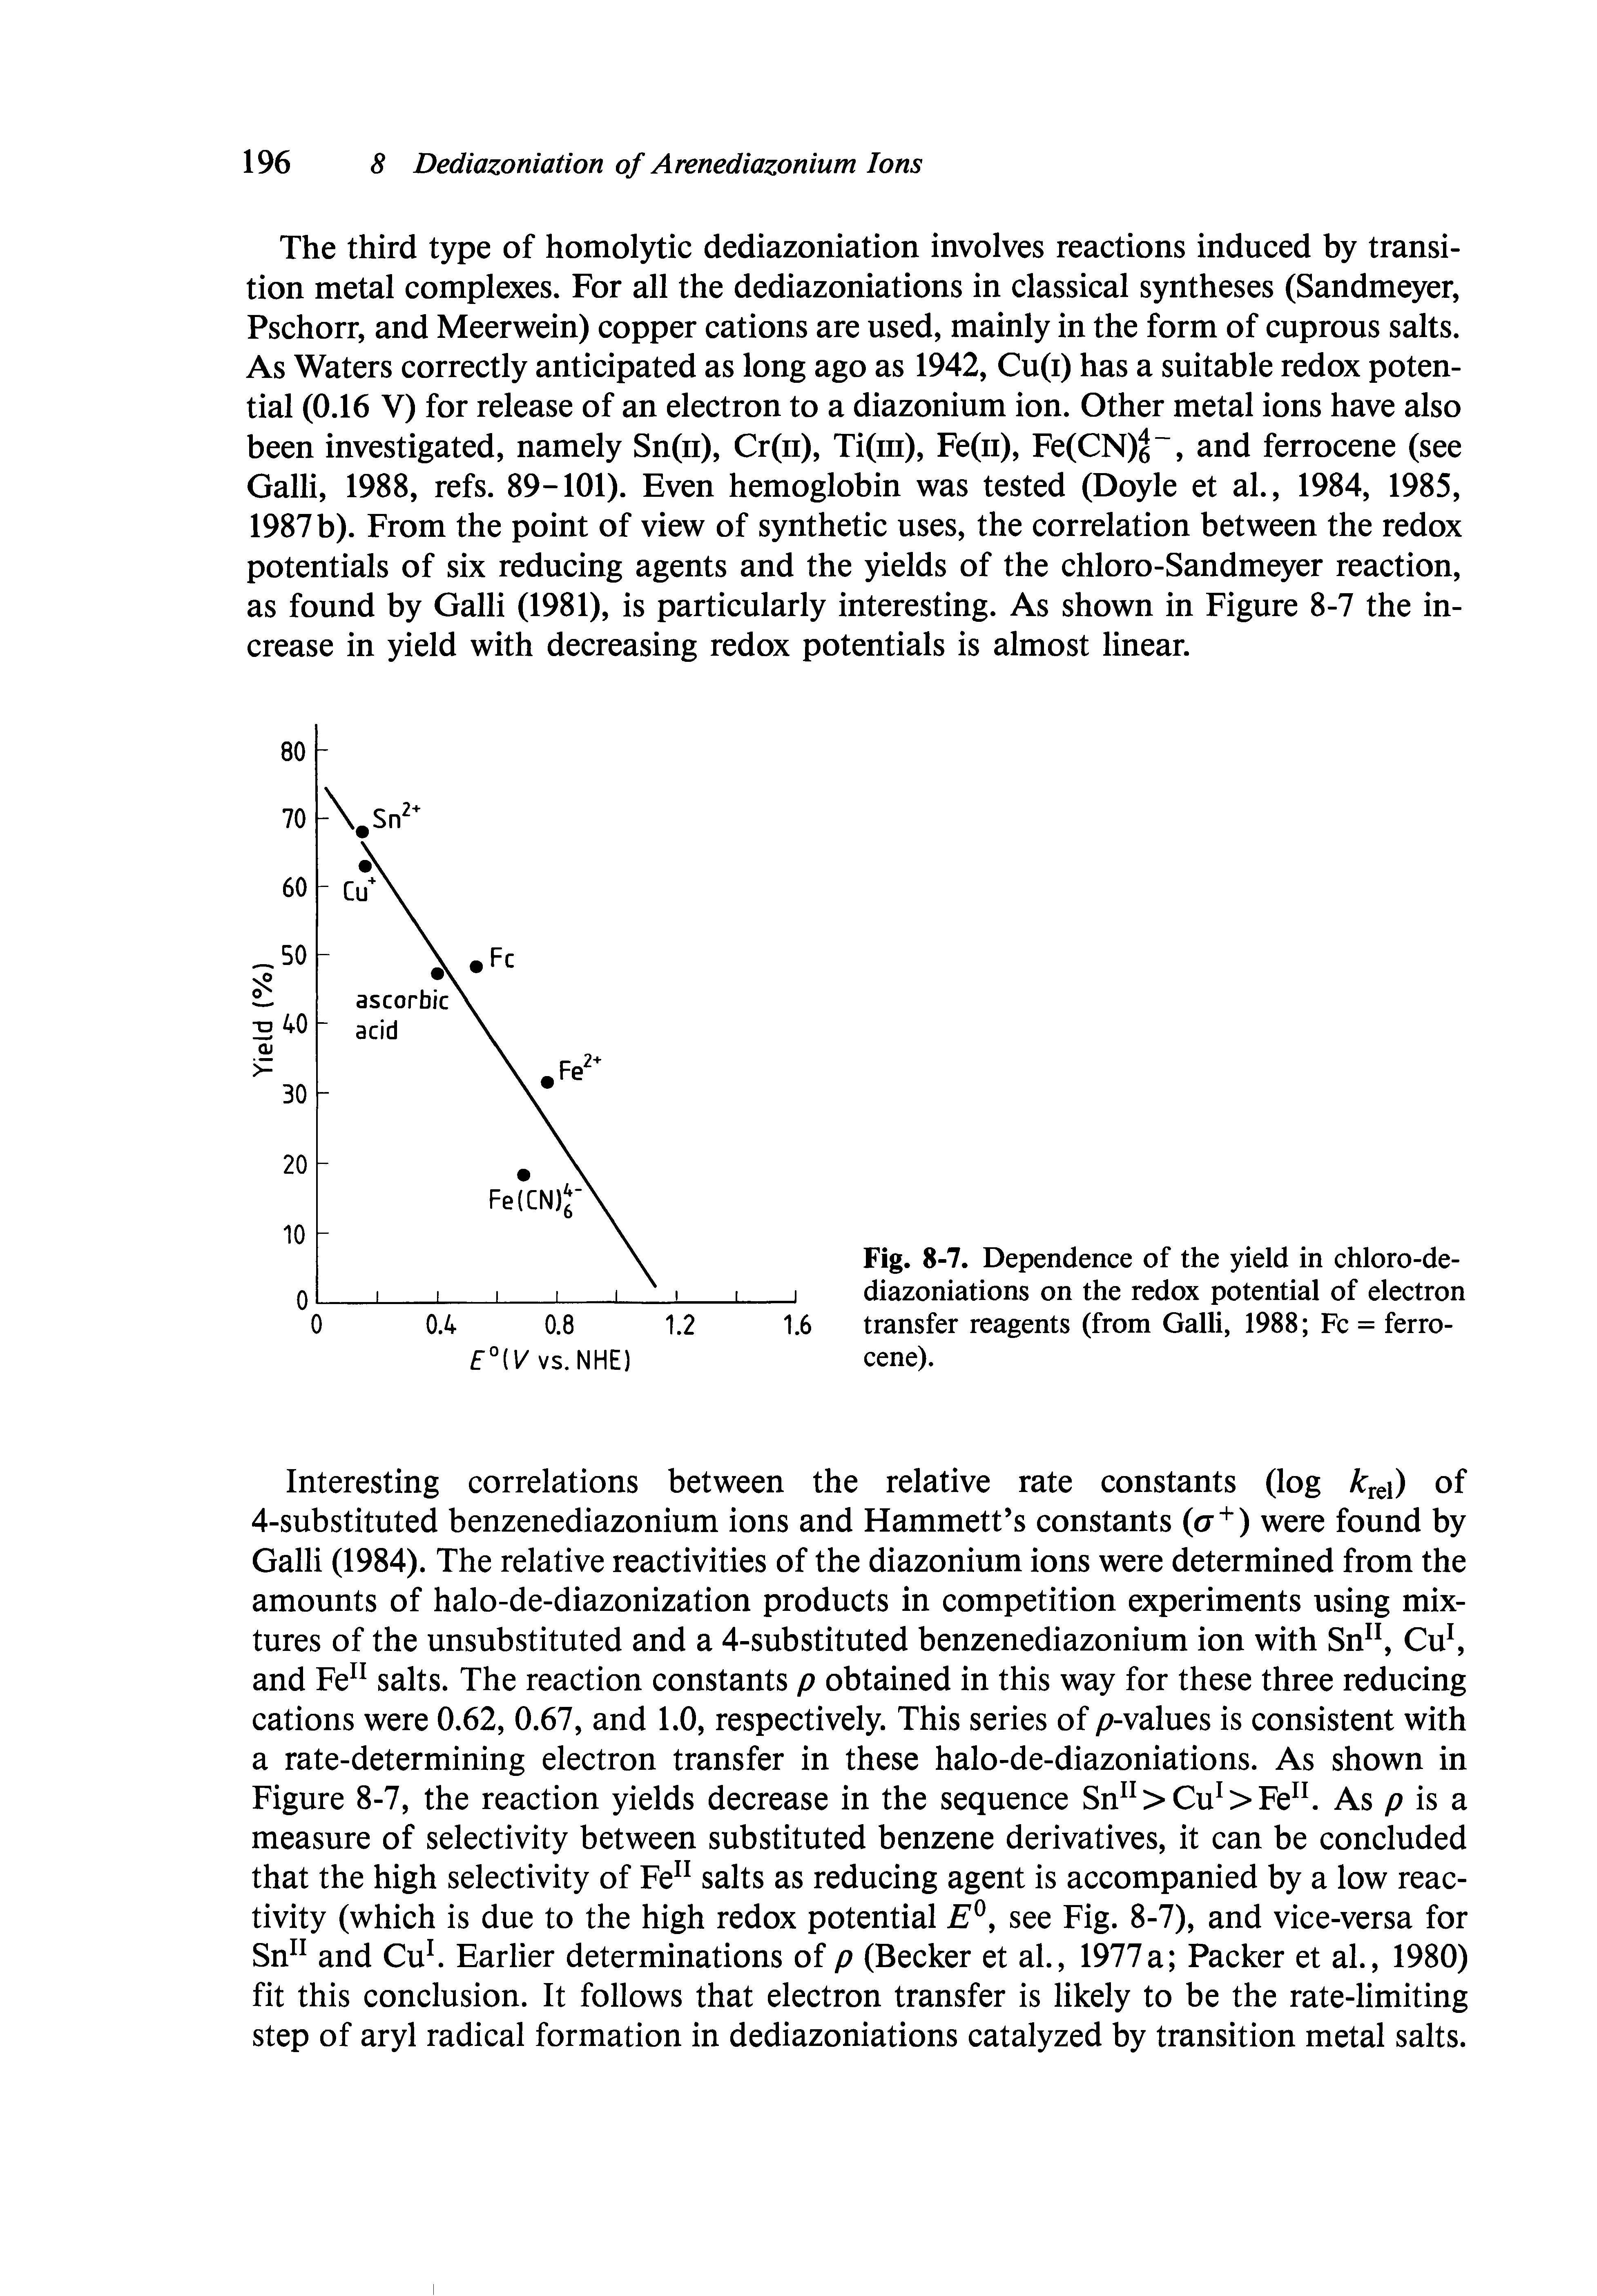 "Fig. 8-7. Dependence of the yield in chloro-de-diazoniations on the <a href=""/info/redox_potentials"">redox potential</a> of <a href=""/info/electron_transfer_reagents"">electron transfer reagents</a> (from Galli, 1988 Fc = ferrocene)."